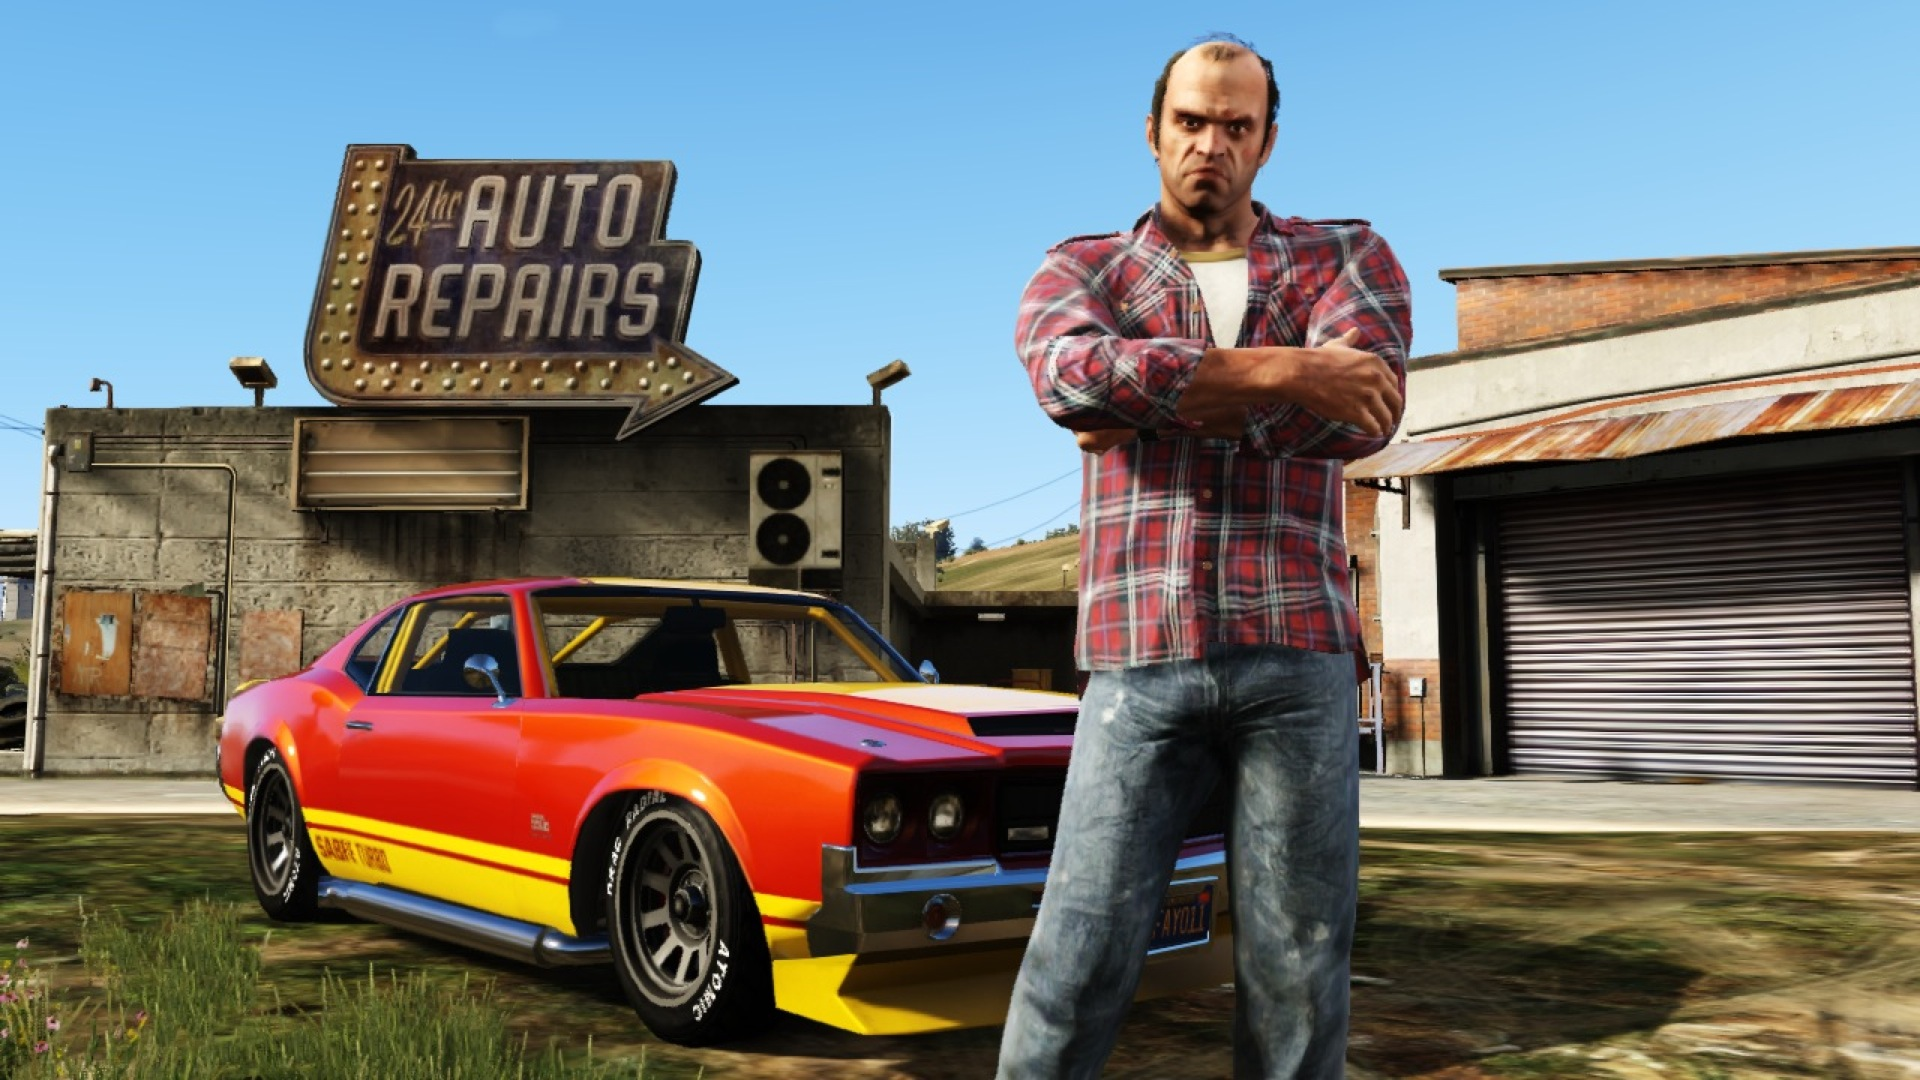 Seven Stunning New GTA 5 Screenshots